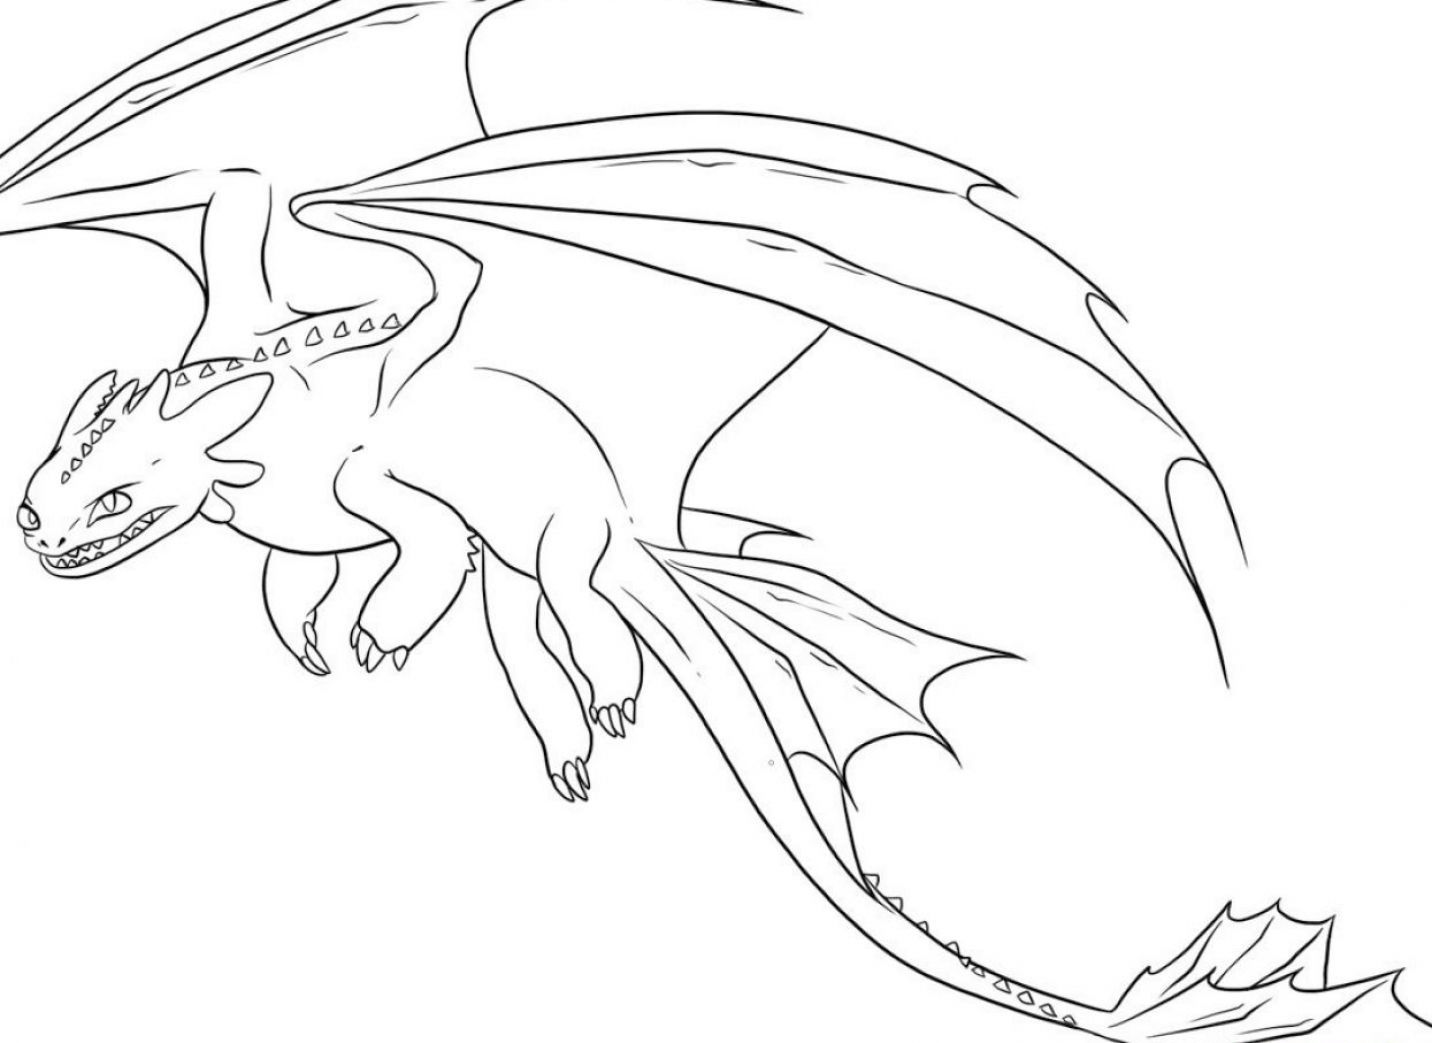 Coloring pages dragons - Dragon Coloring Pages For Adults 18 Pictures Colorine Net 10875